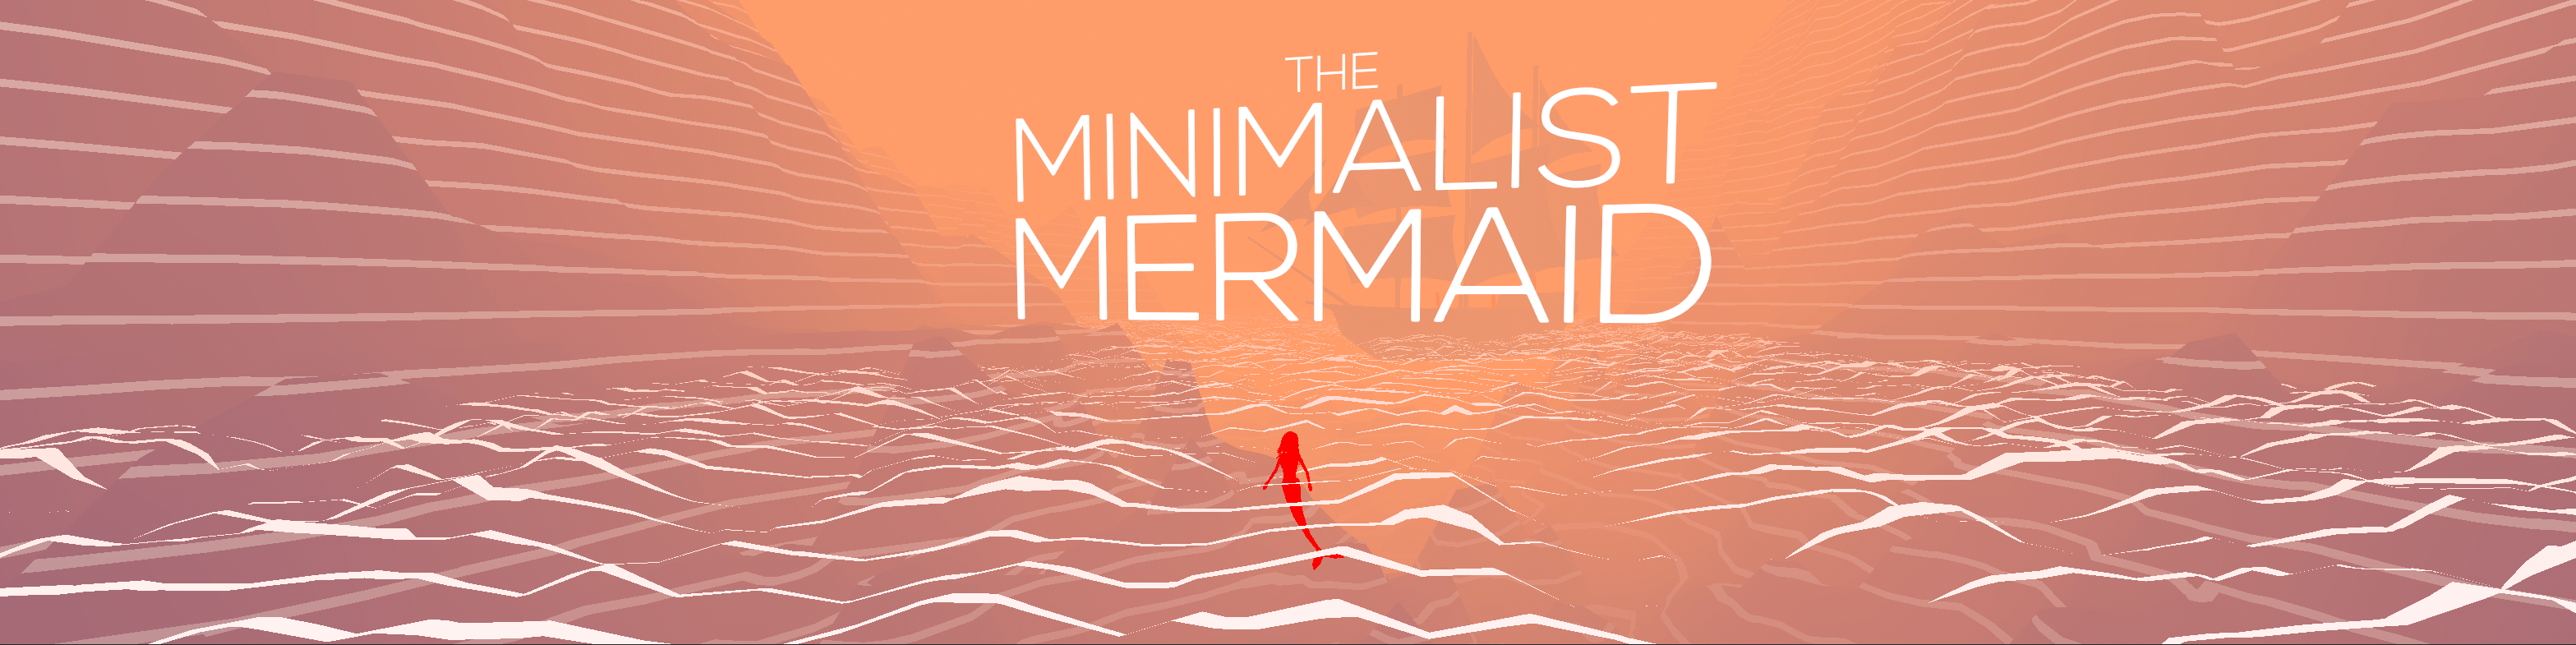 The Minimalist Mermaid VR